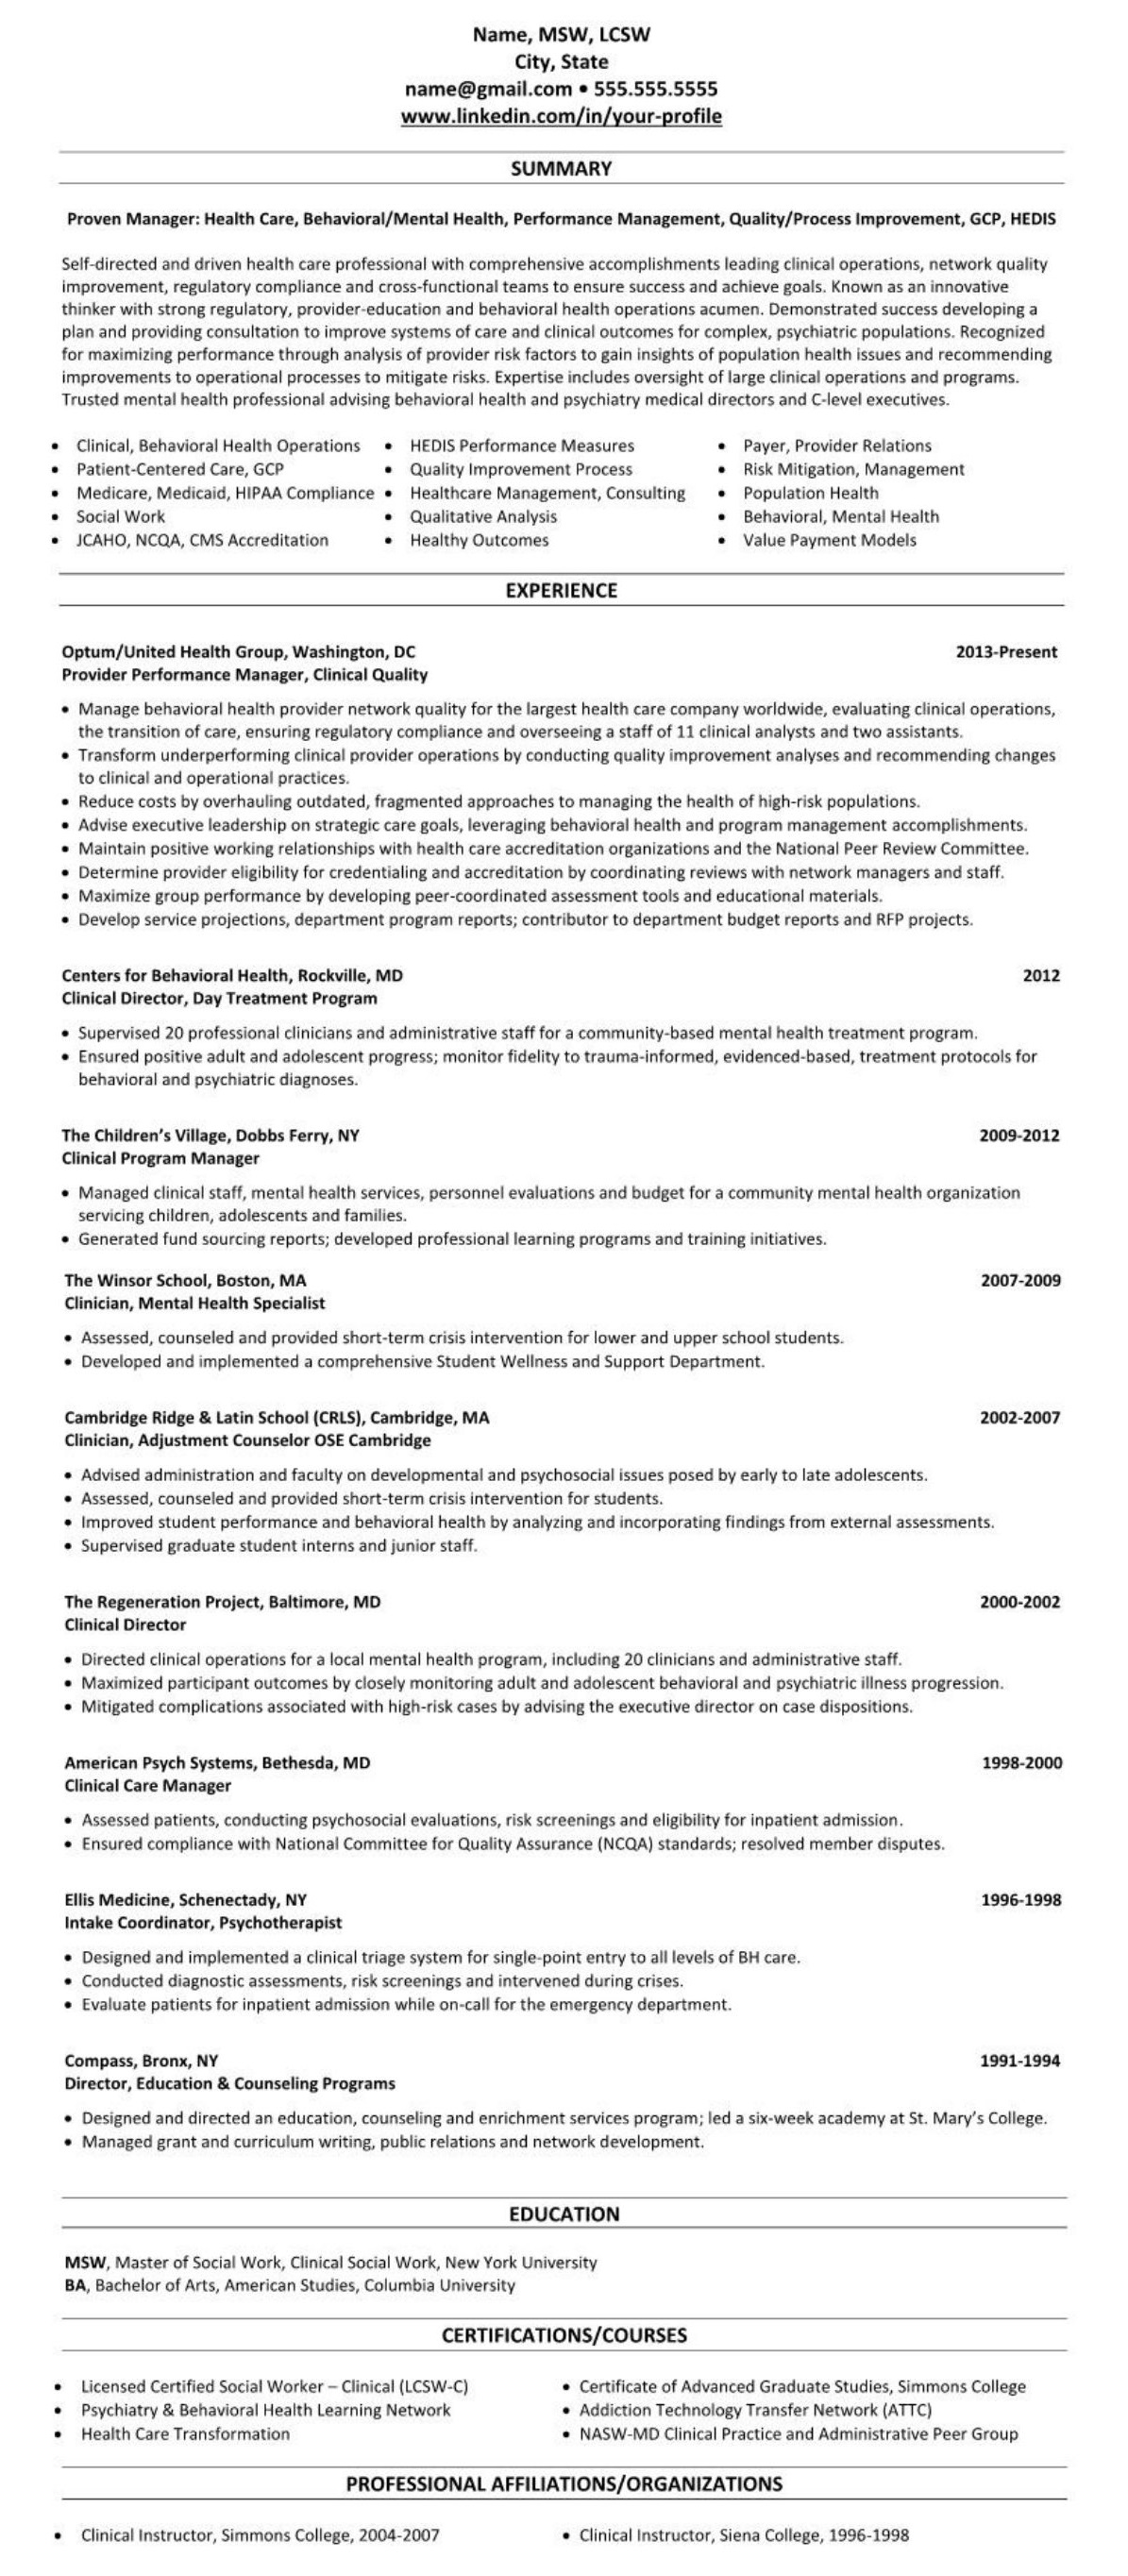 Professional executive resume example behavior health physician quality 2543